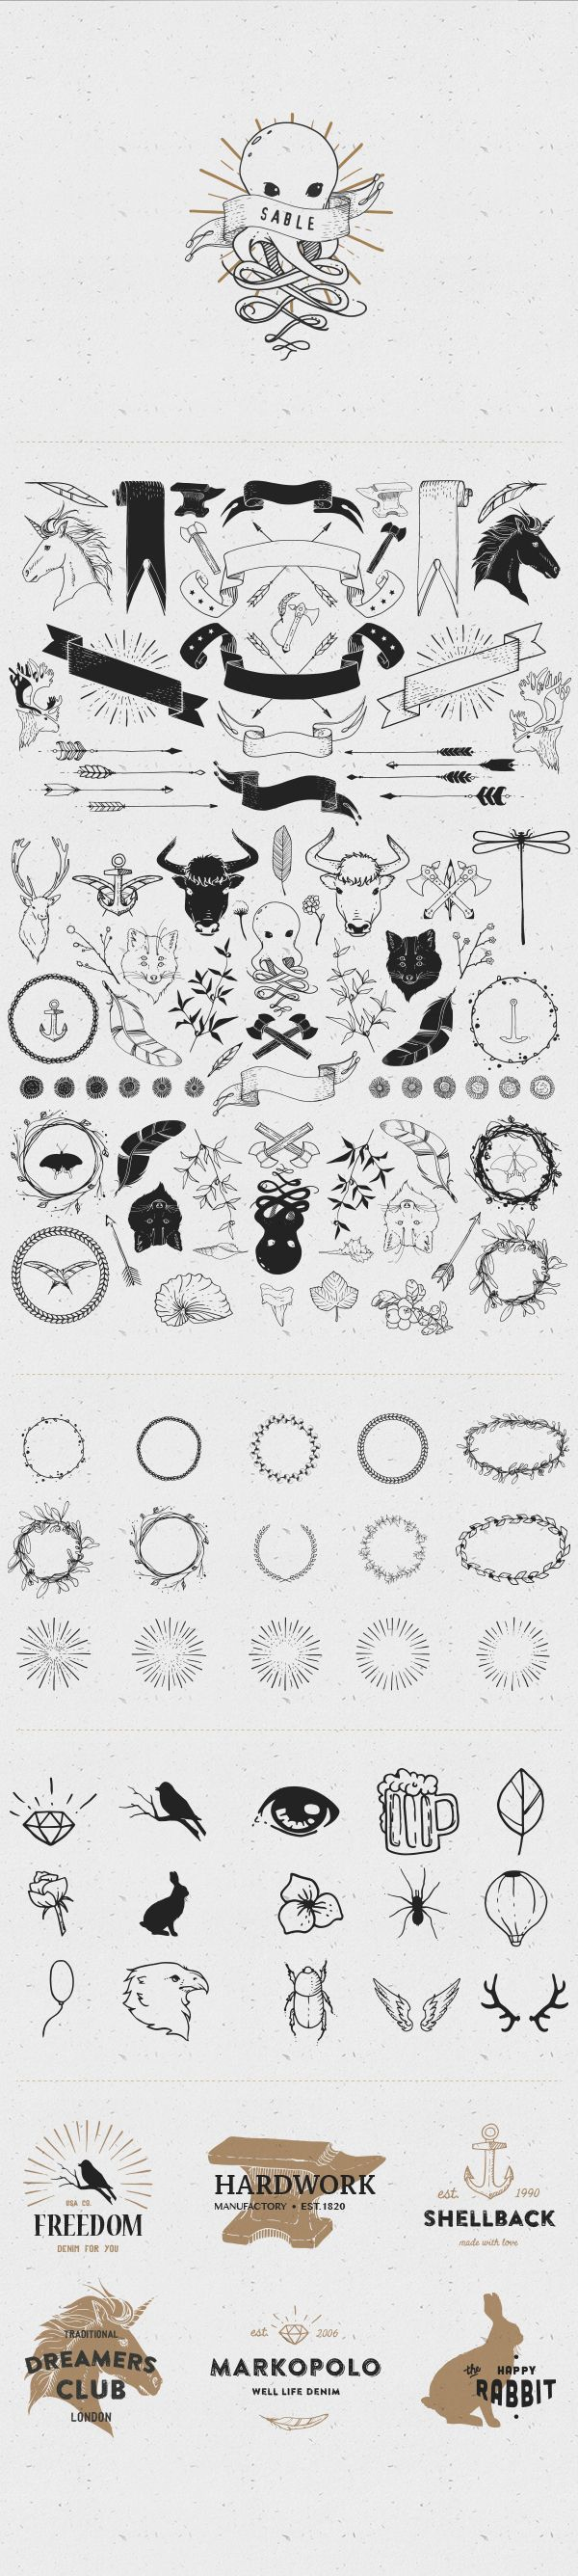 Vector hand-sketched kit, that includes about 100+ unique shapes like arrows, frames, leaves, decoration elements and even some magic creatures. In the package you will find elements for creating logos, labels, prints, patterns, greeting cards and many ot…